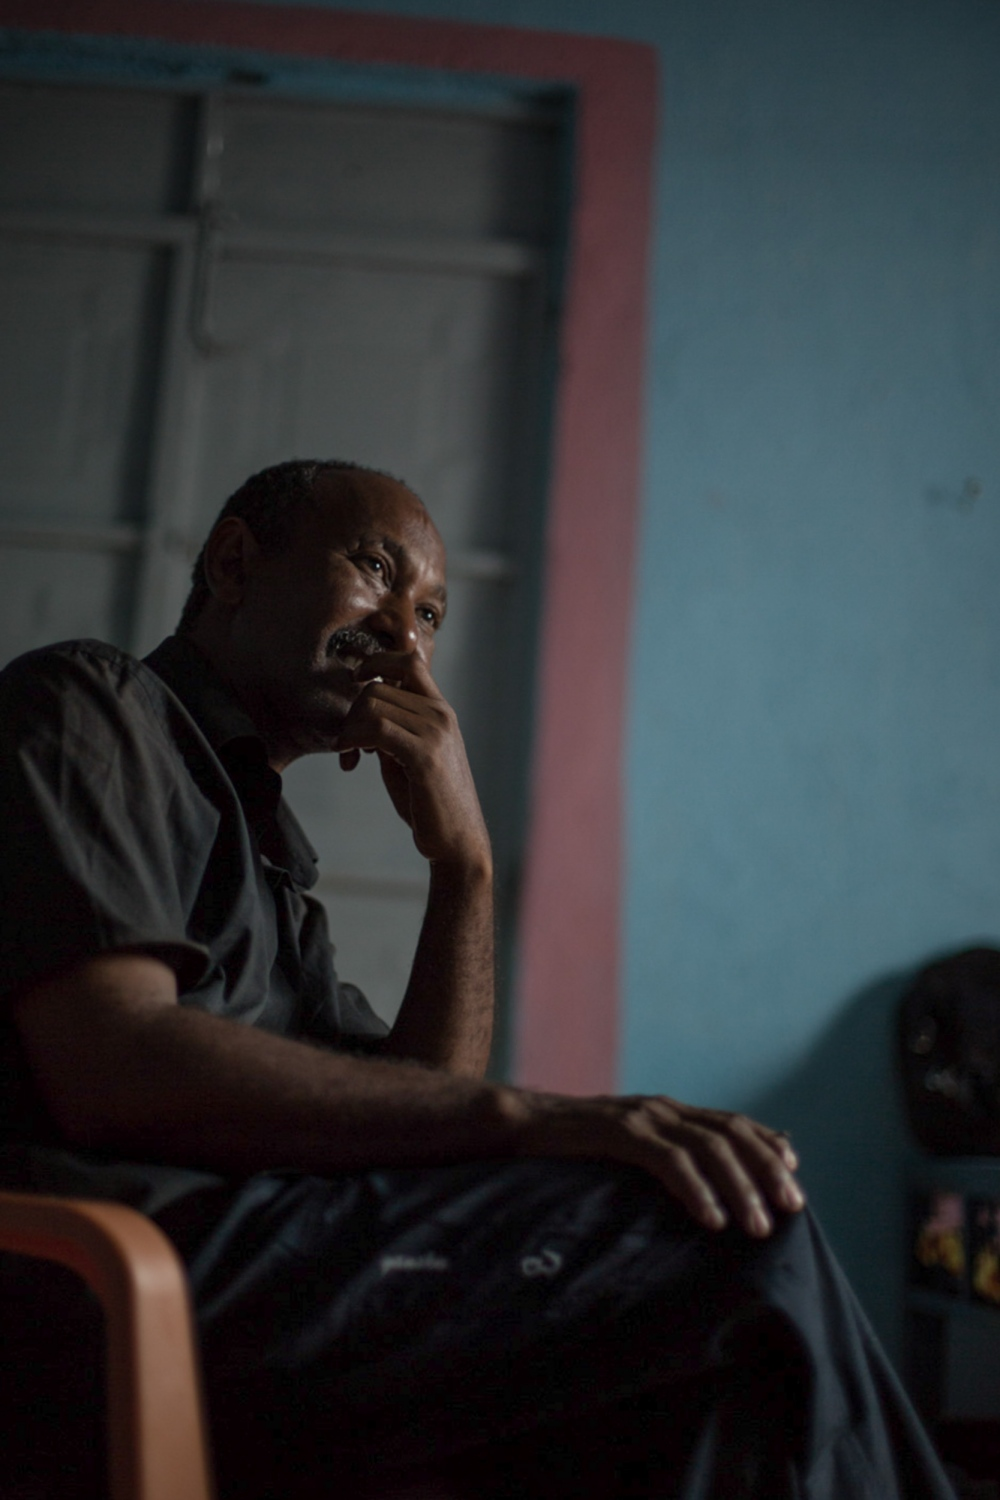 Solomon has been at Hitsats camp since 2003. He has been waiting to hear from the UNHCR about his asylum application for 15 years.